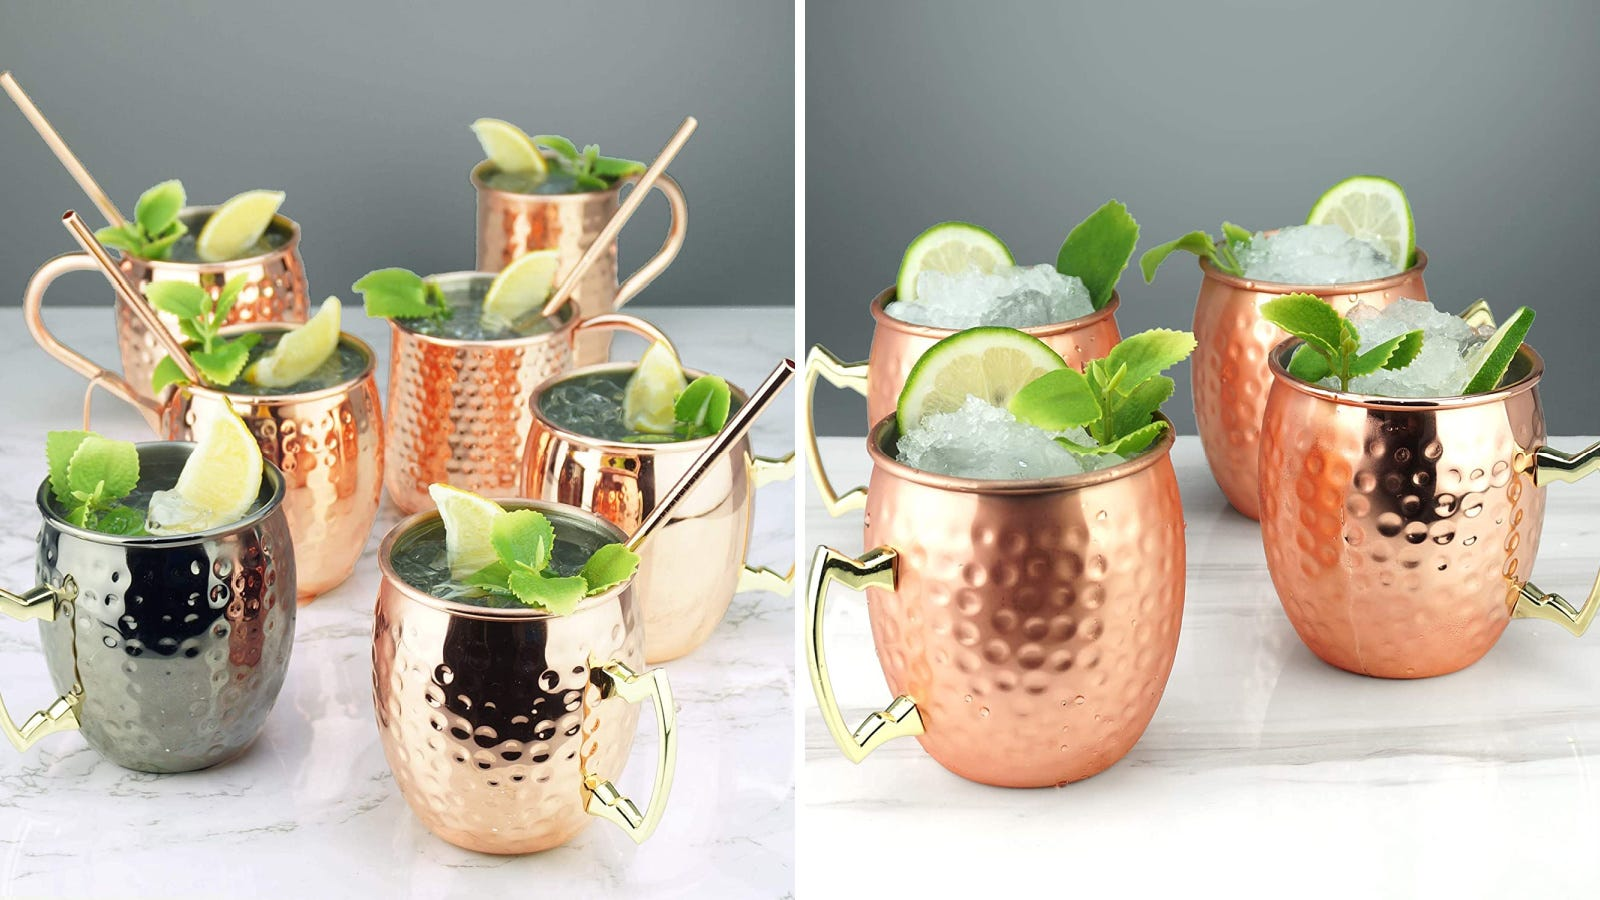 Two images displaying PG Moscow Mule mugs, filled with the drink and garnished.